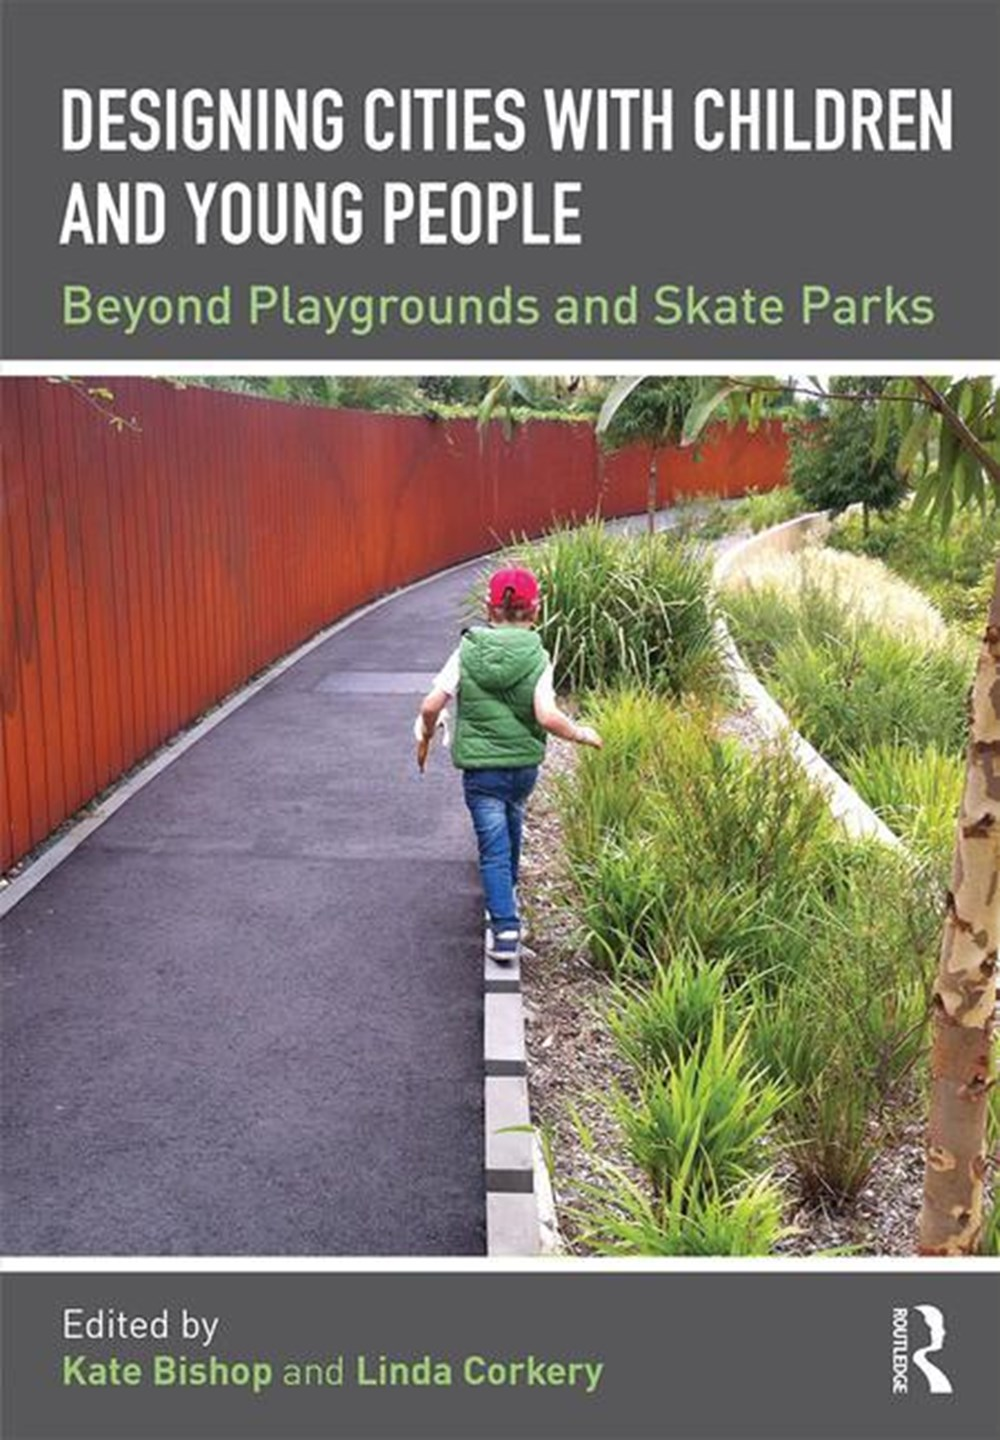 Designing Cities with Children and Young People Beyond Playgrounds and Skate Parks